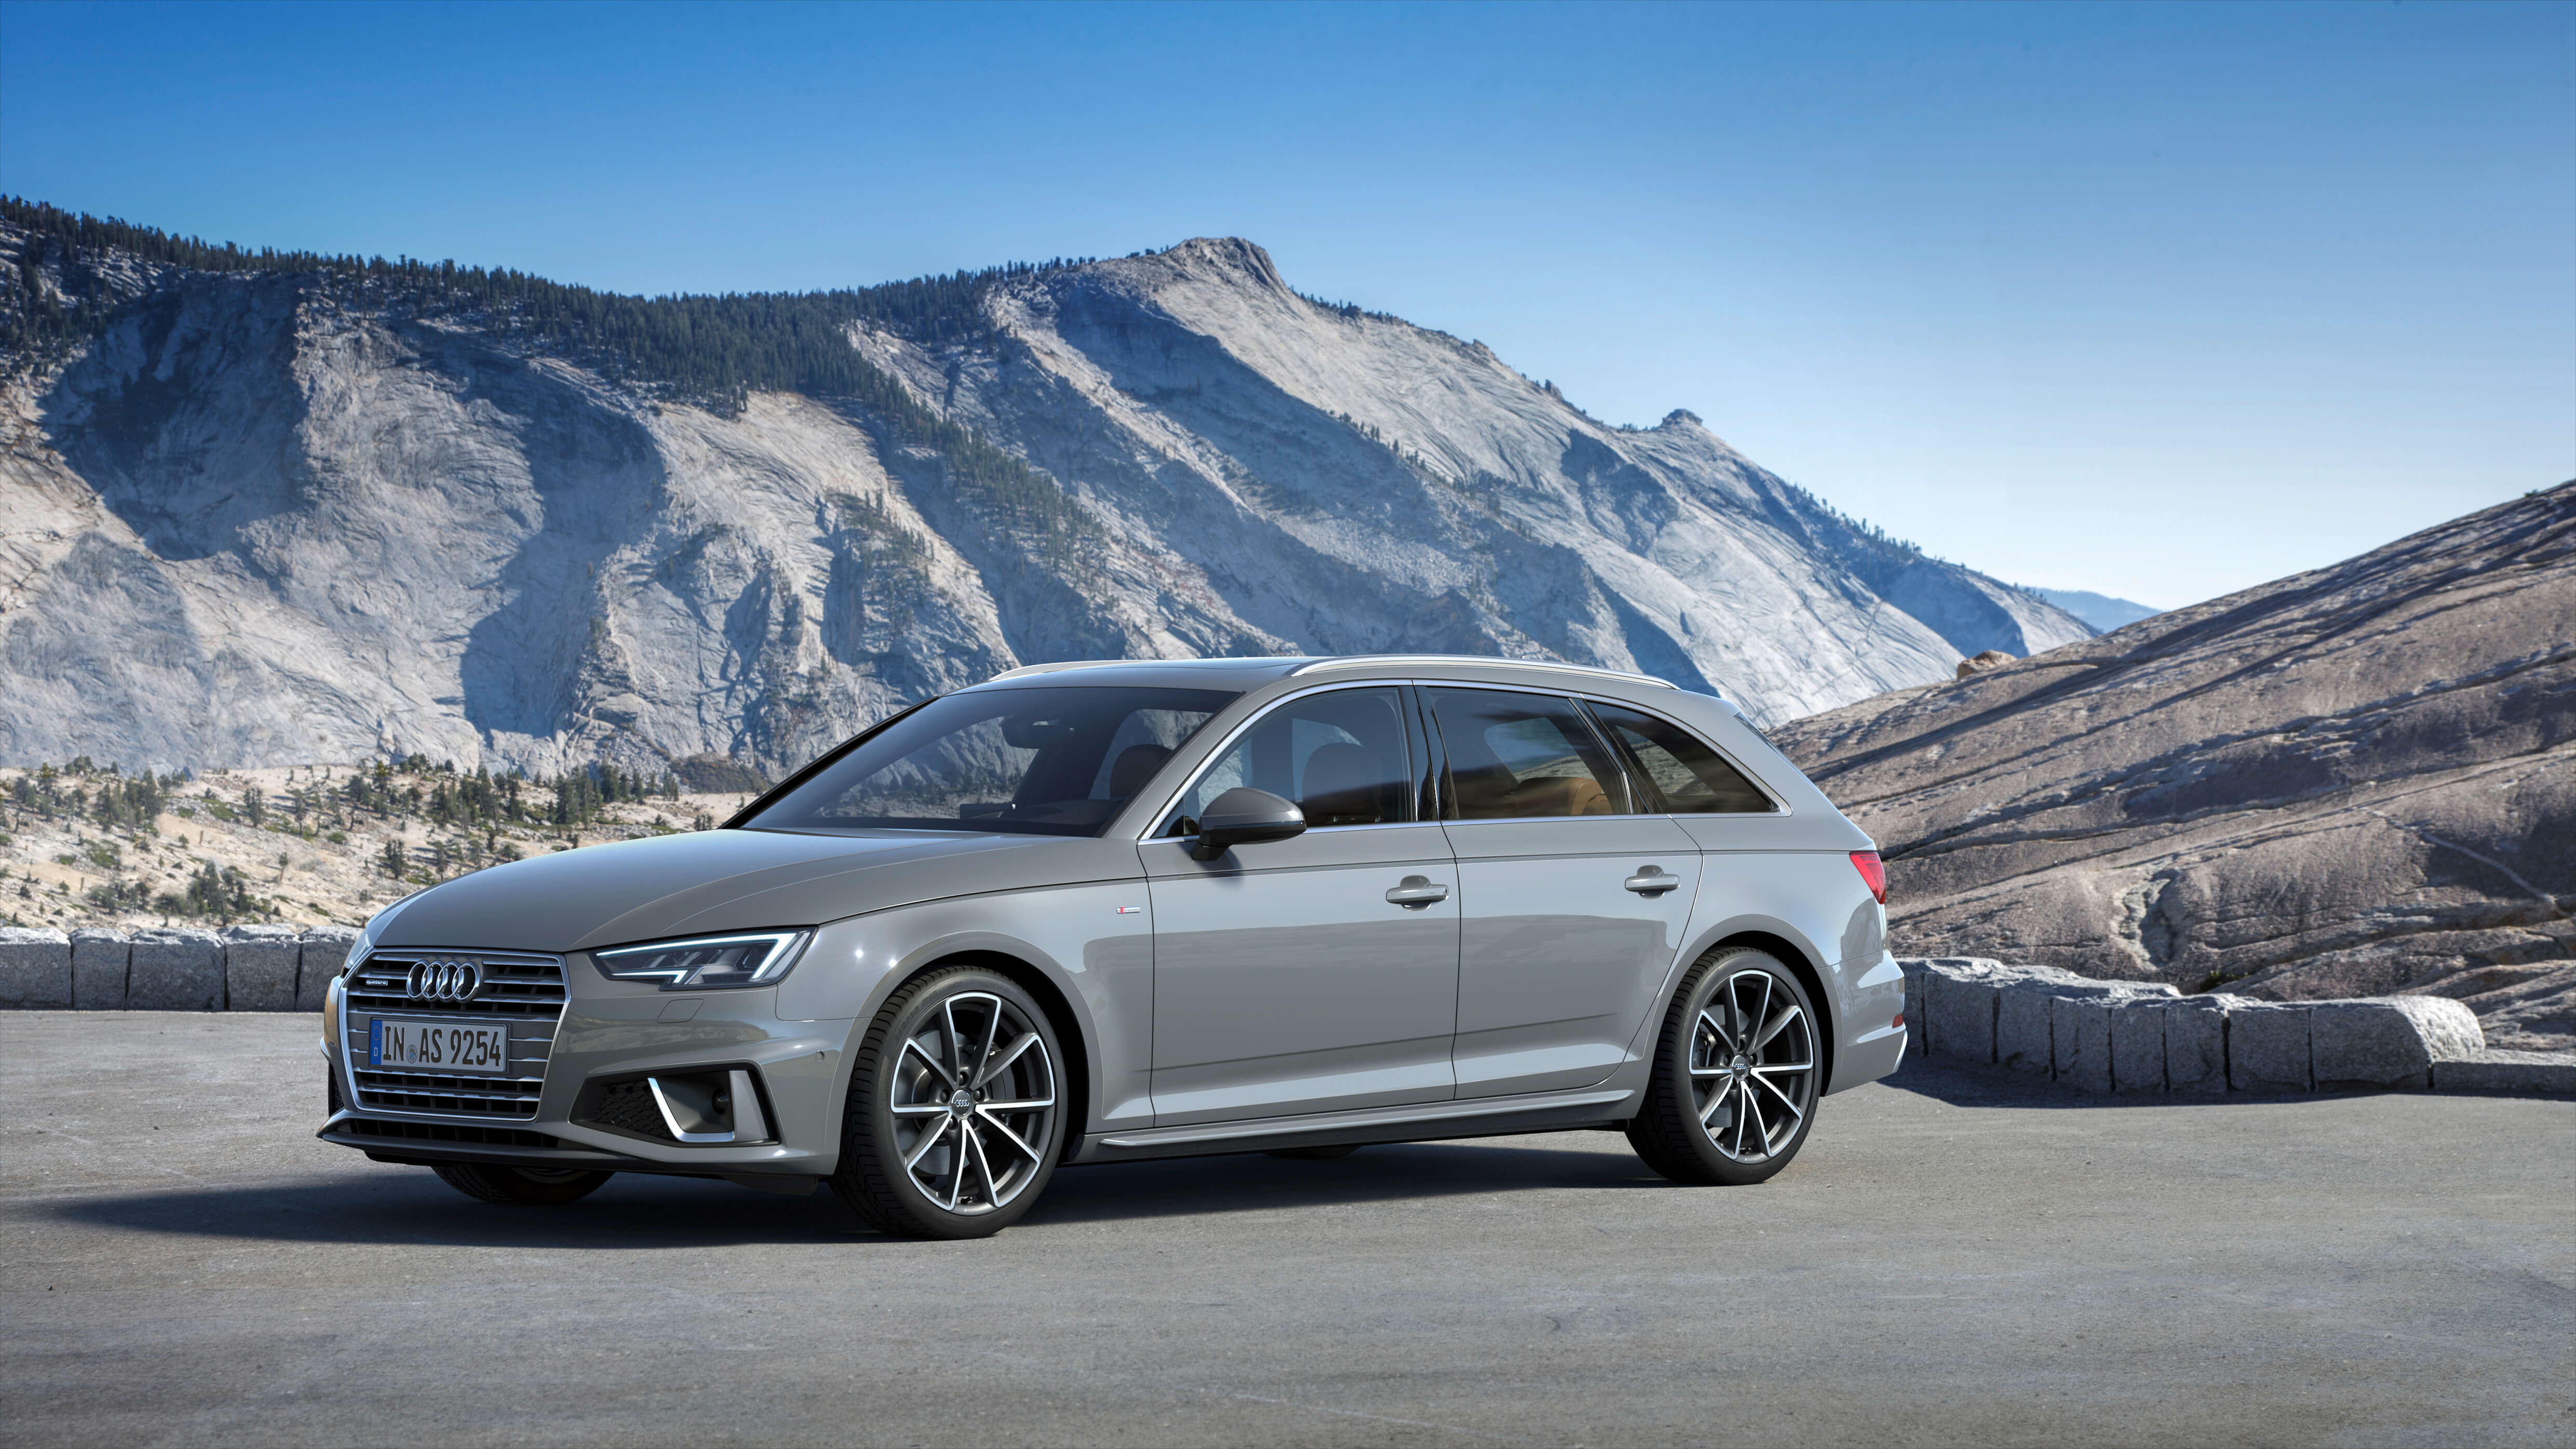 audi a4 avant sport 2 0 tdi s tronic leasing f r 149 euro. Black Bedroom Furniture Sets. Home Design Ideas